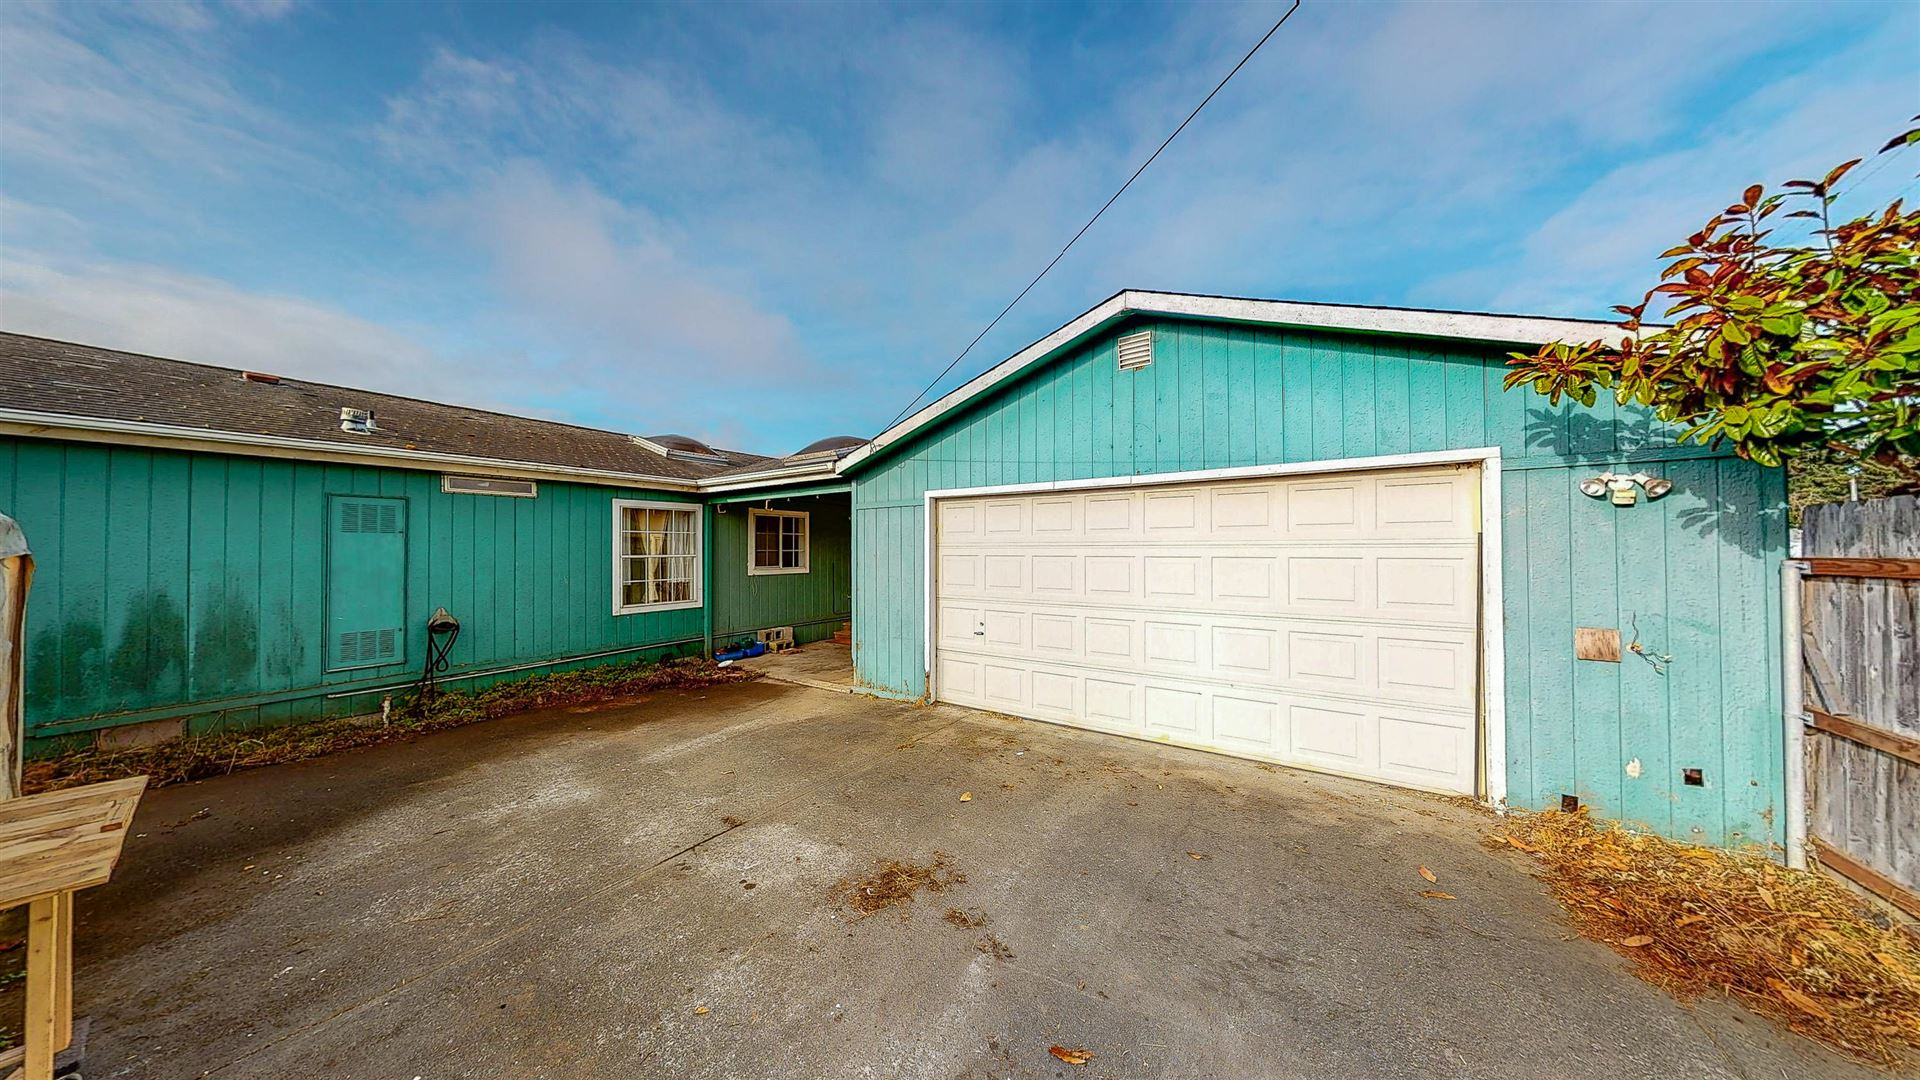 1686 Murray Road, McKinleyville, CA 95519 - MLS#: 257466